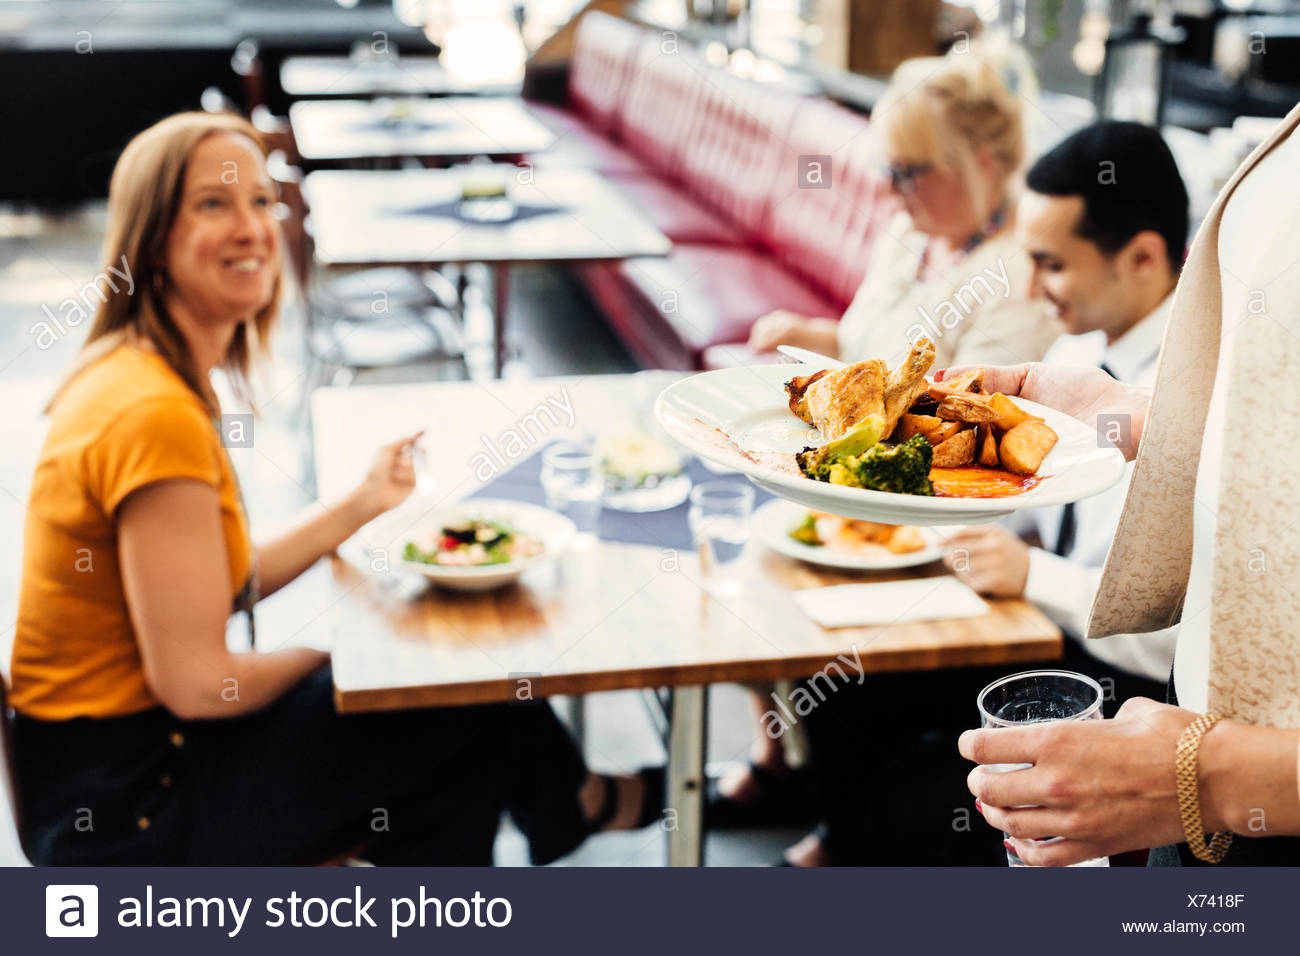 Four colleagues meeting over lunch in cafeteria - Stock Image